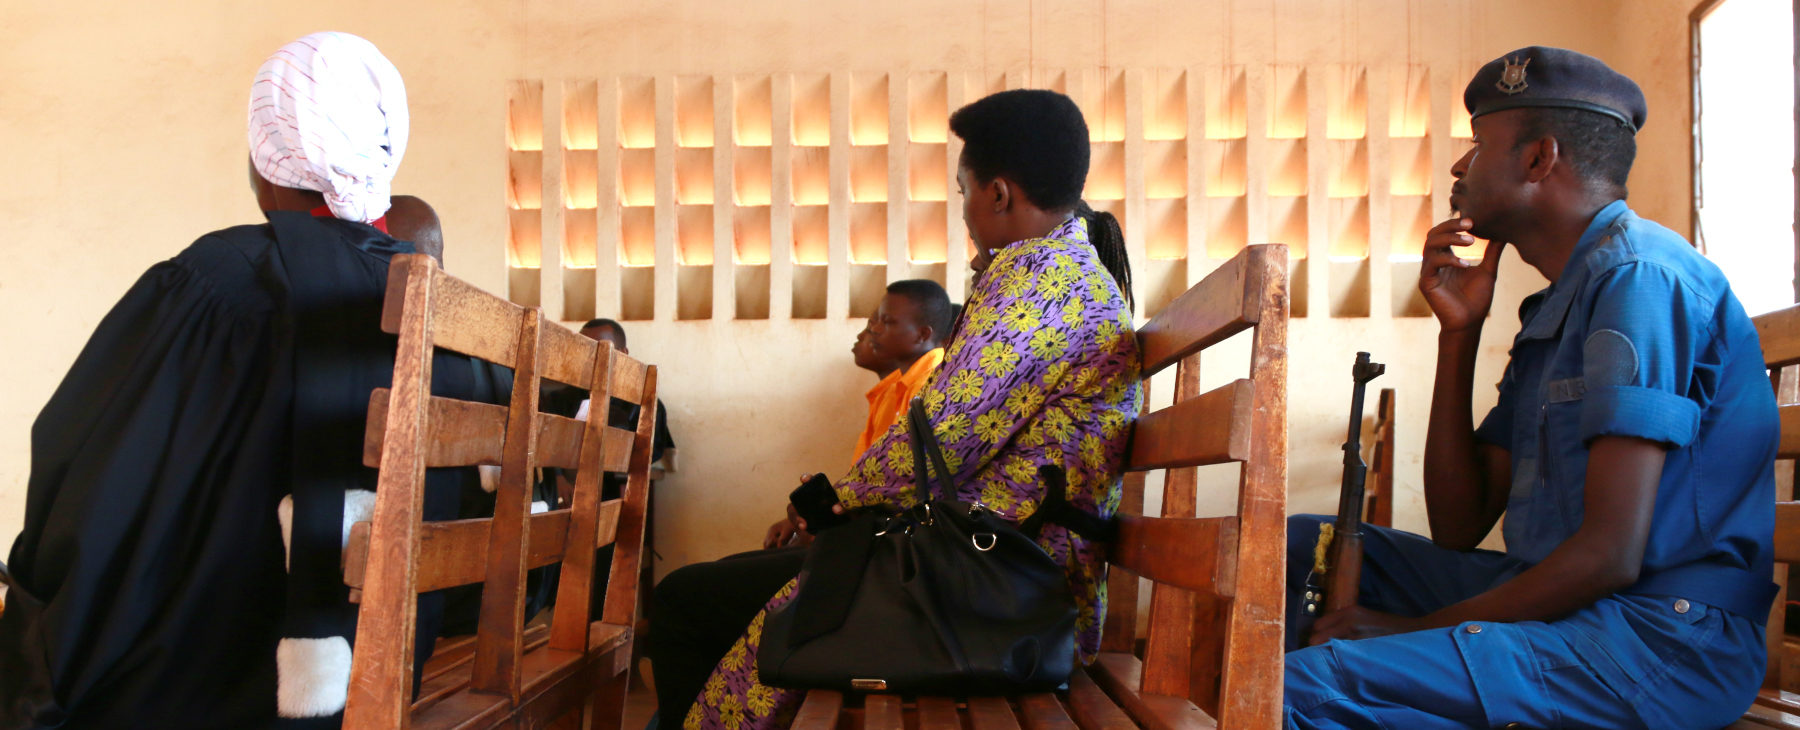 A rare win for a victim of sexual violence in Burundi